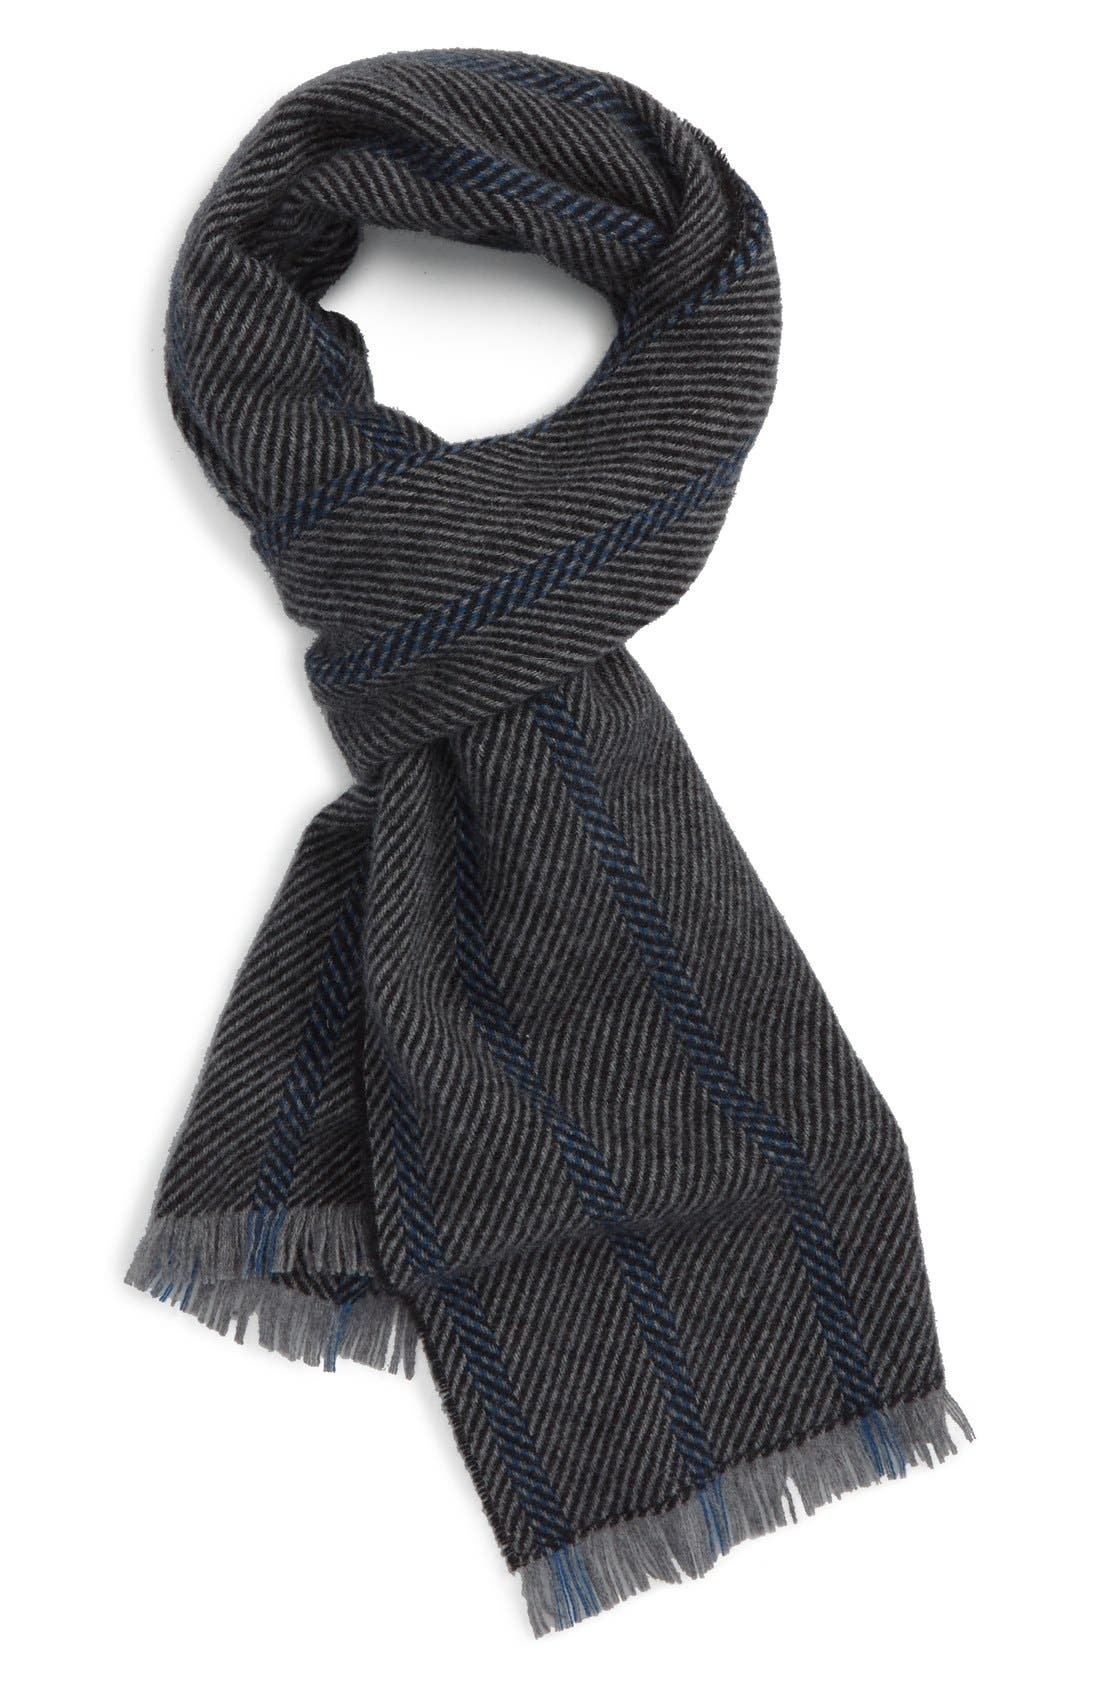 Stripe Cashmere Scarf,                             Main thumbnail 1, color,                             Black/ Grey/ Cobalt